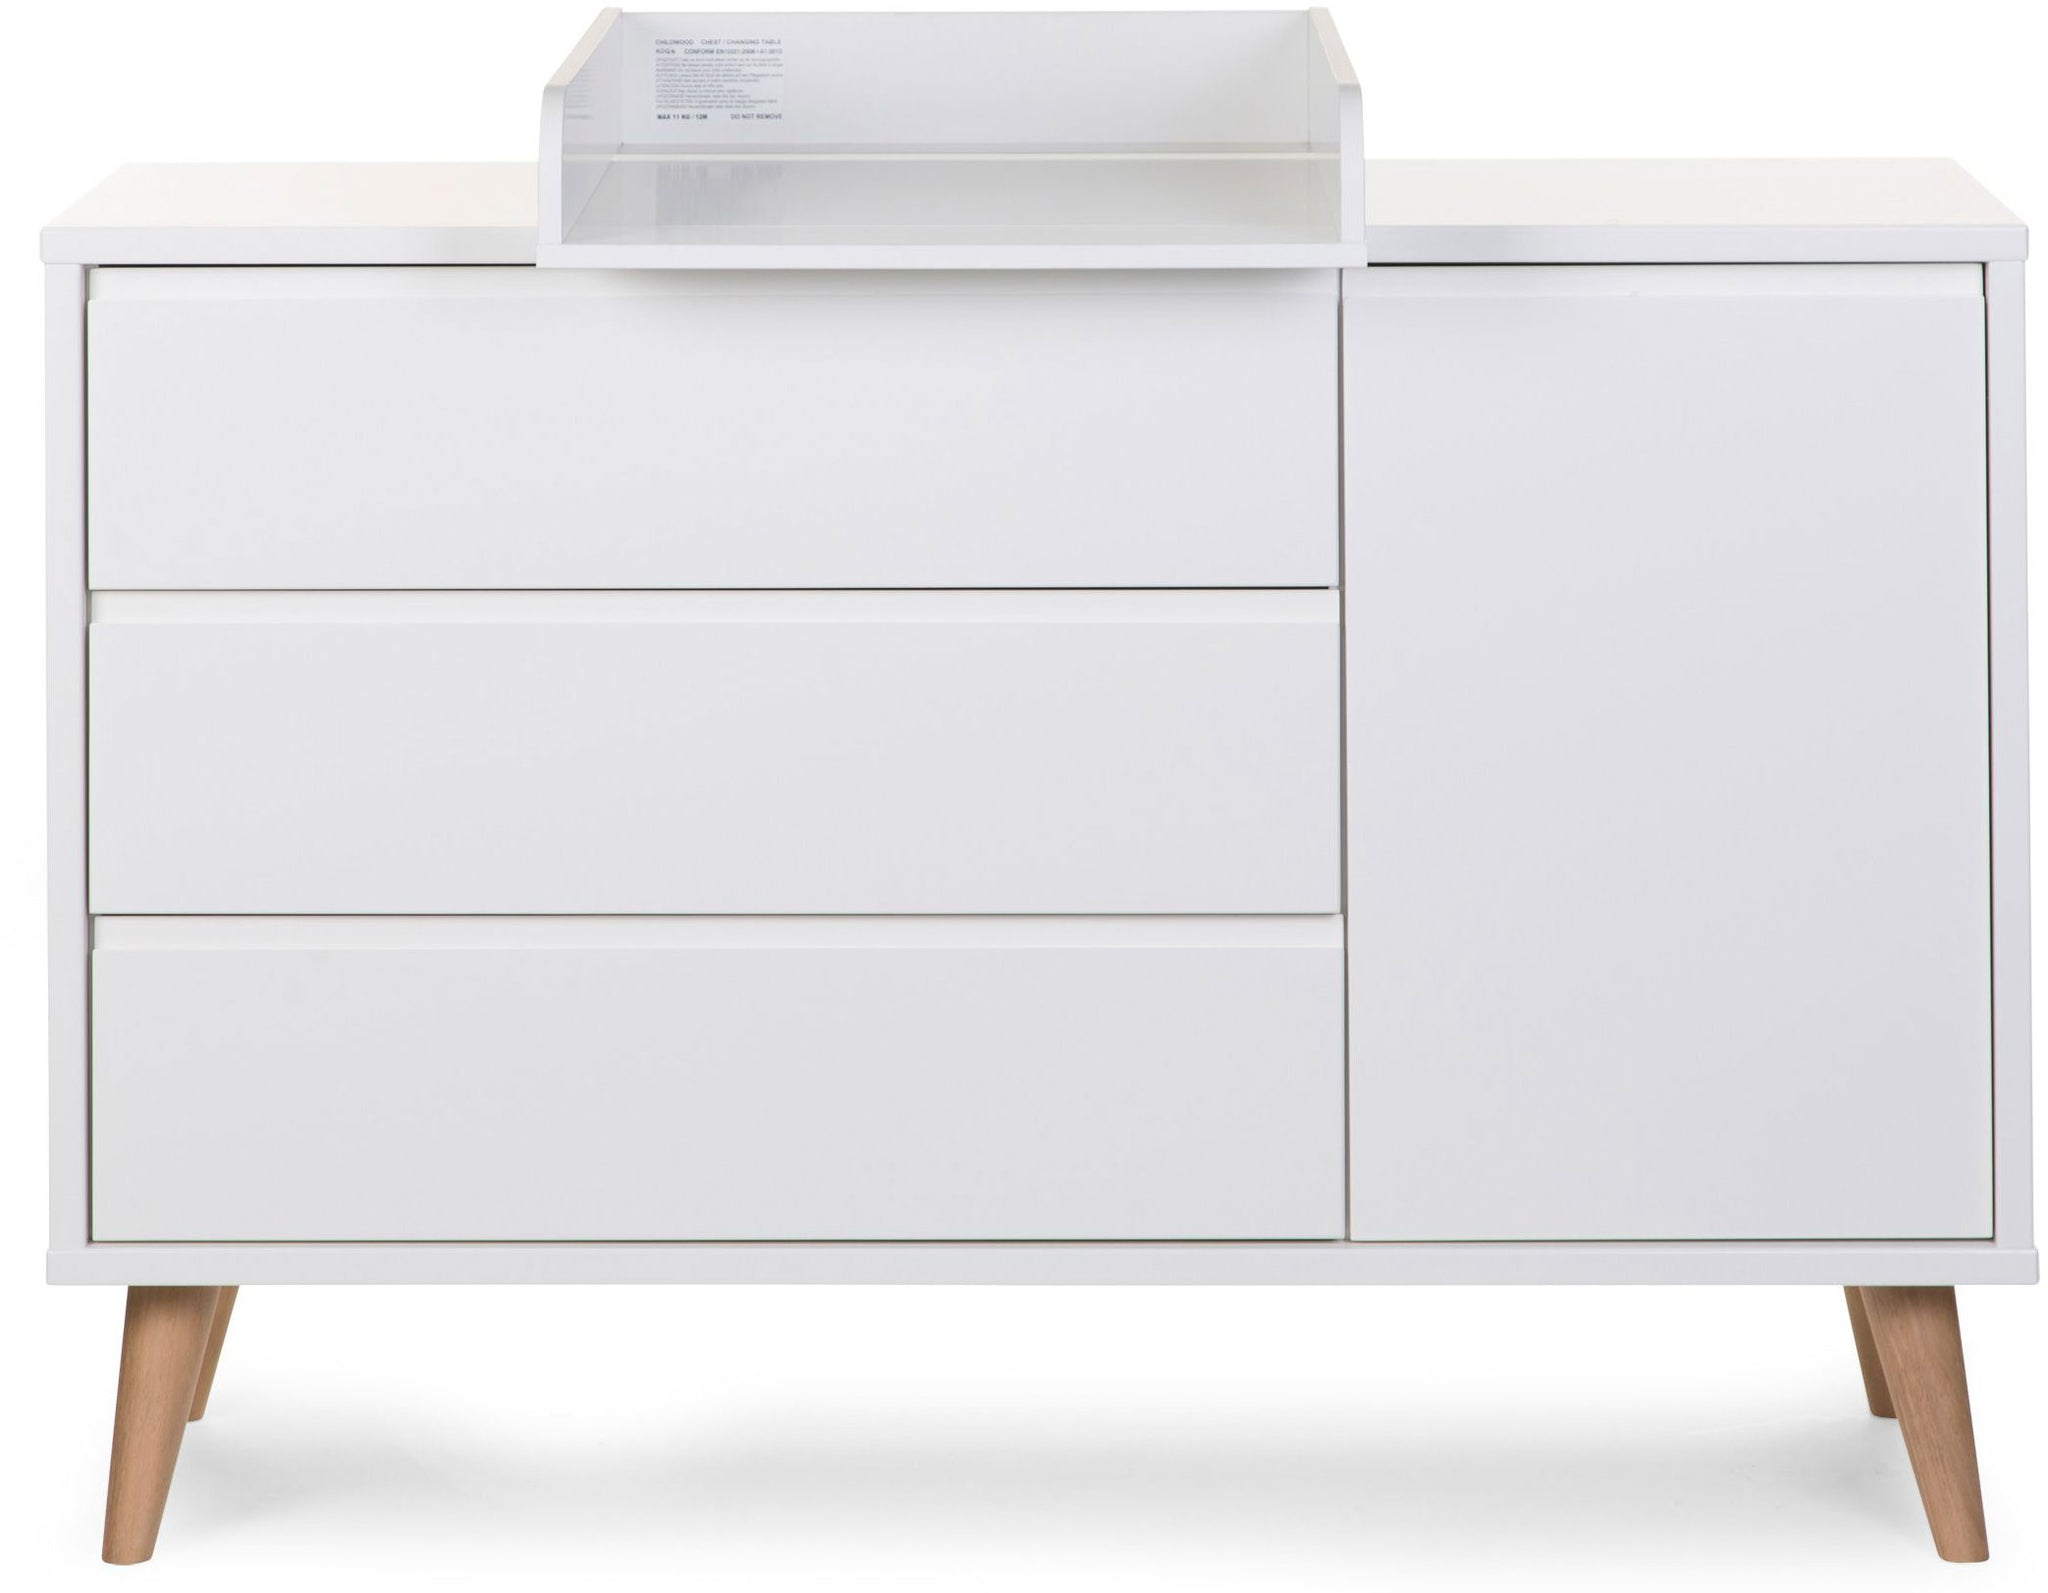 ChildHome Retro Rio Dresser Large White with Changing Table